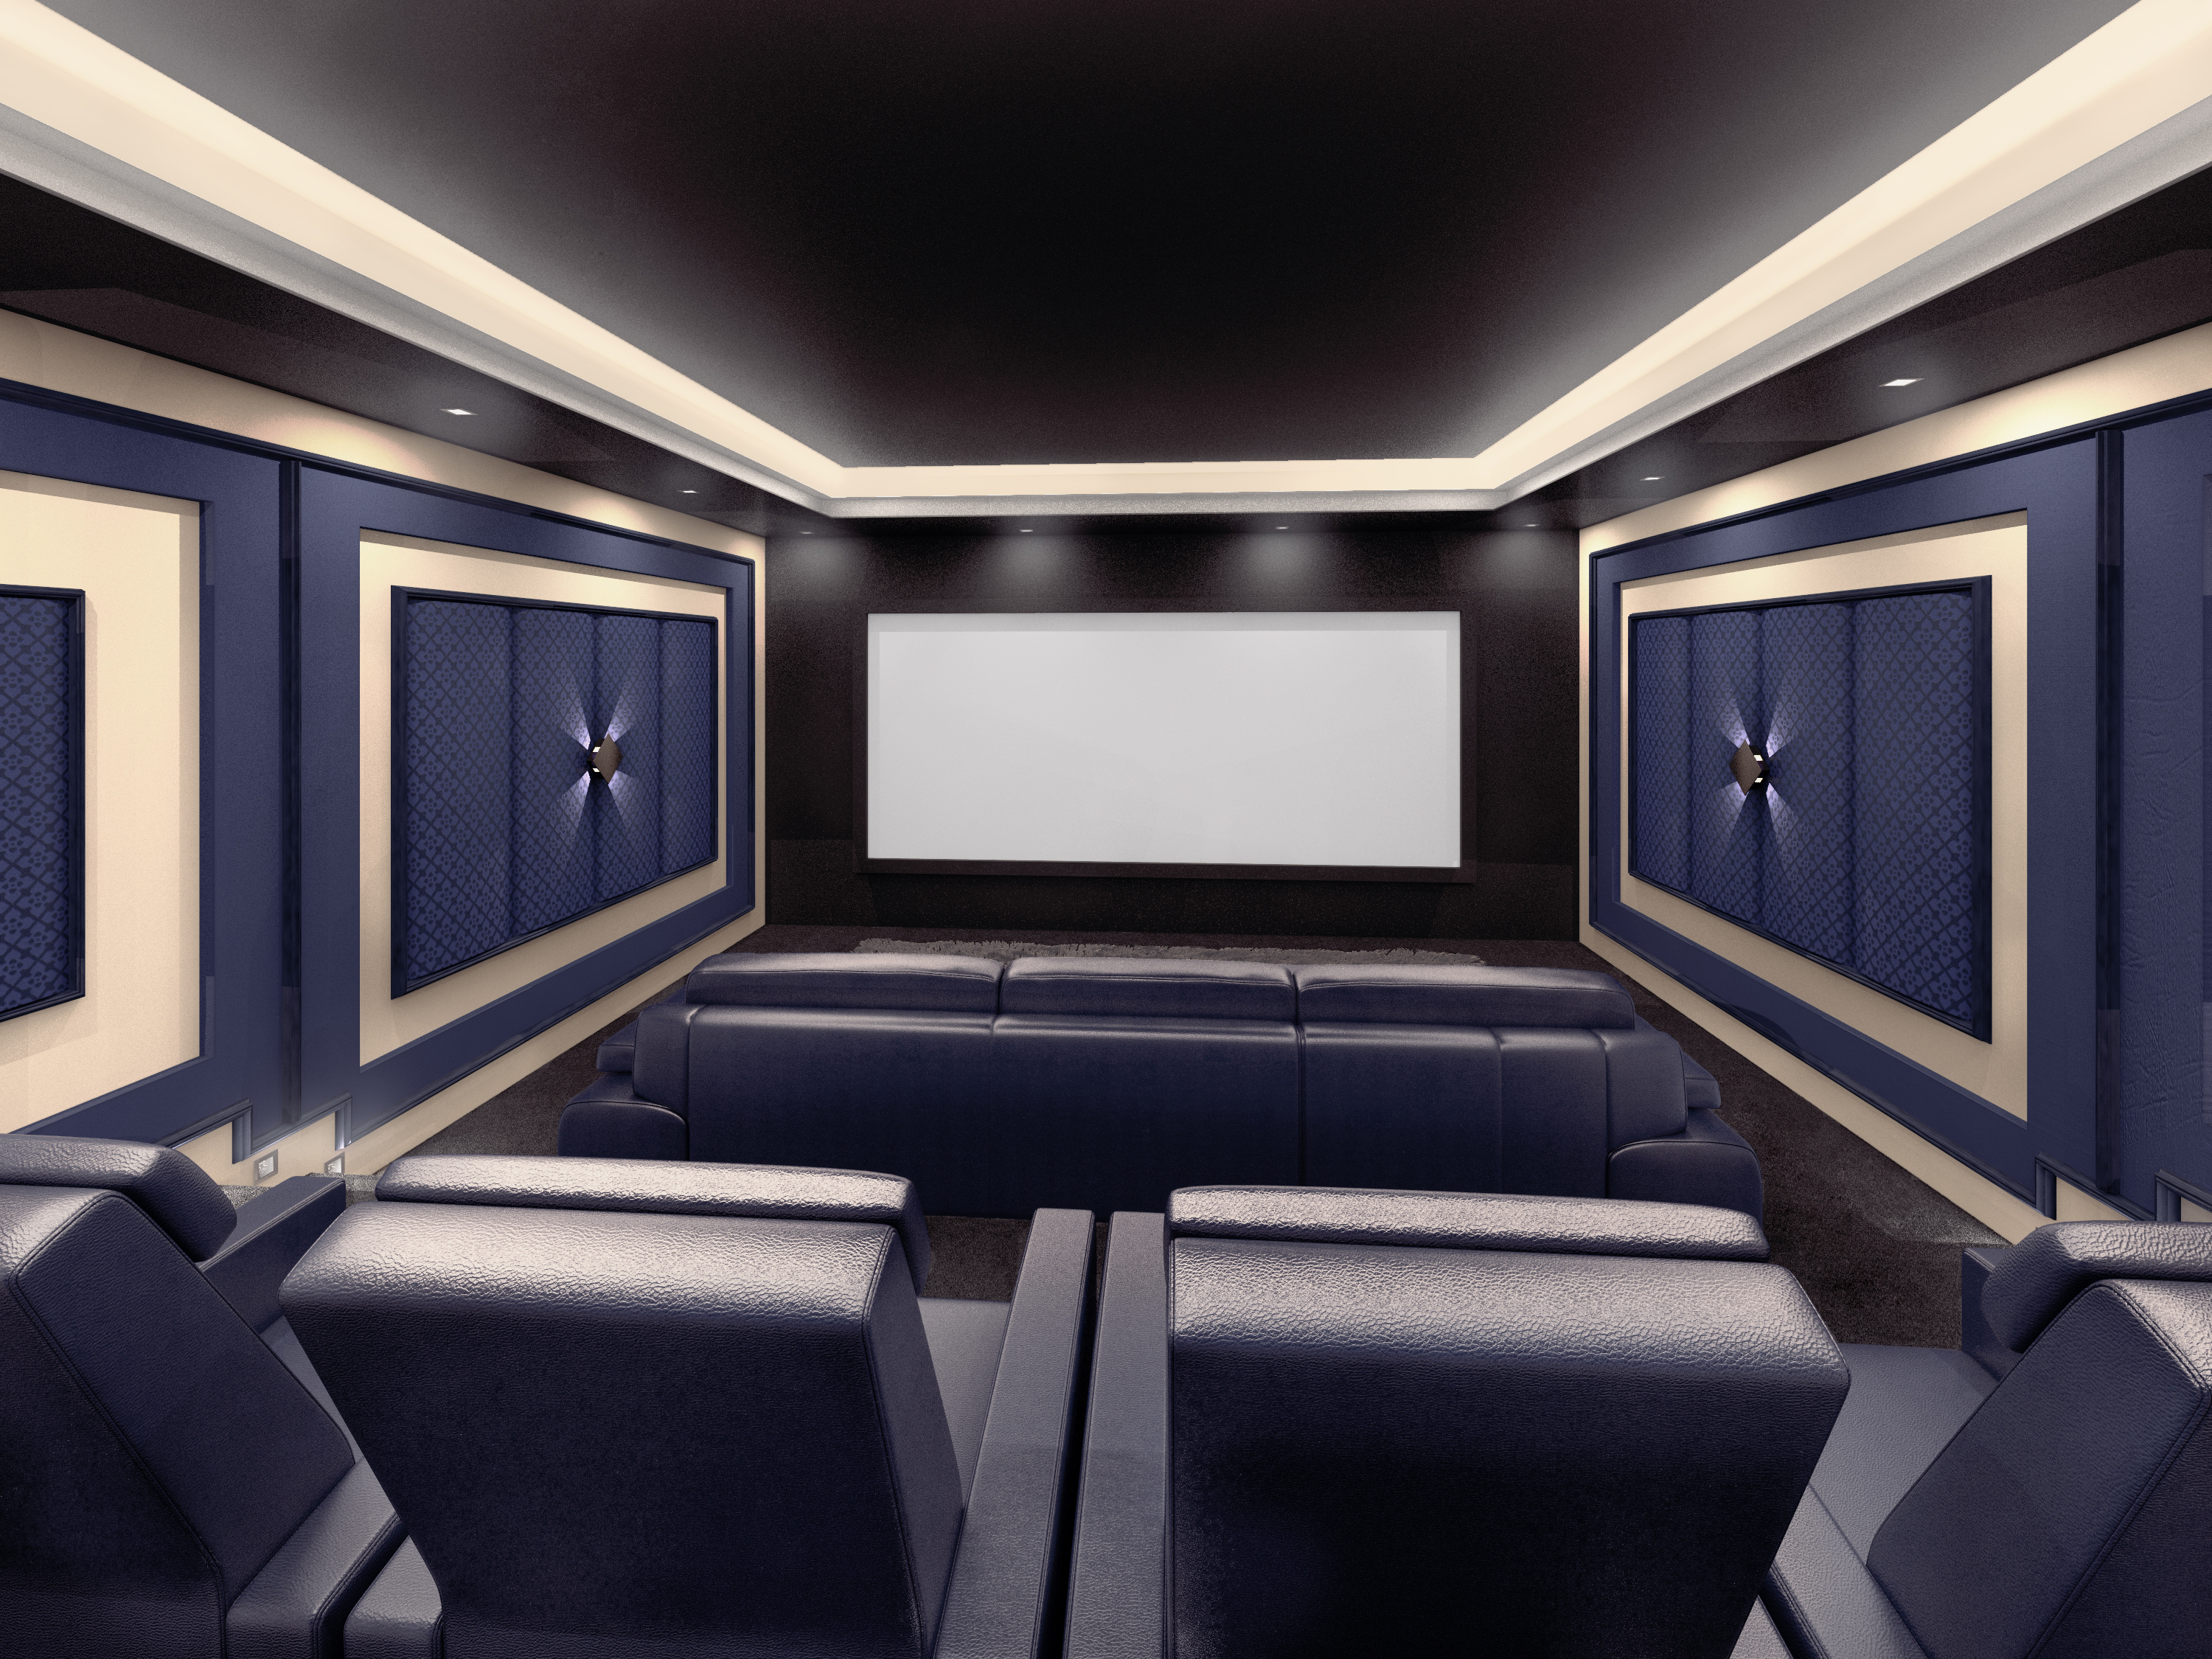 LED Cove Lighting Allows You To Add Home Theater Lighting Without Creating  A Glare Or Shining Onto Your Screen. This Type Of Lighting Can Be Added  Behind ...